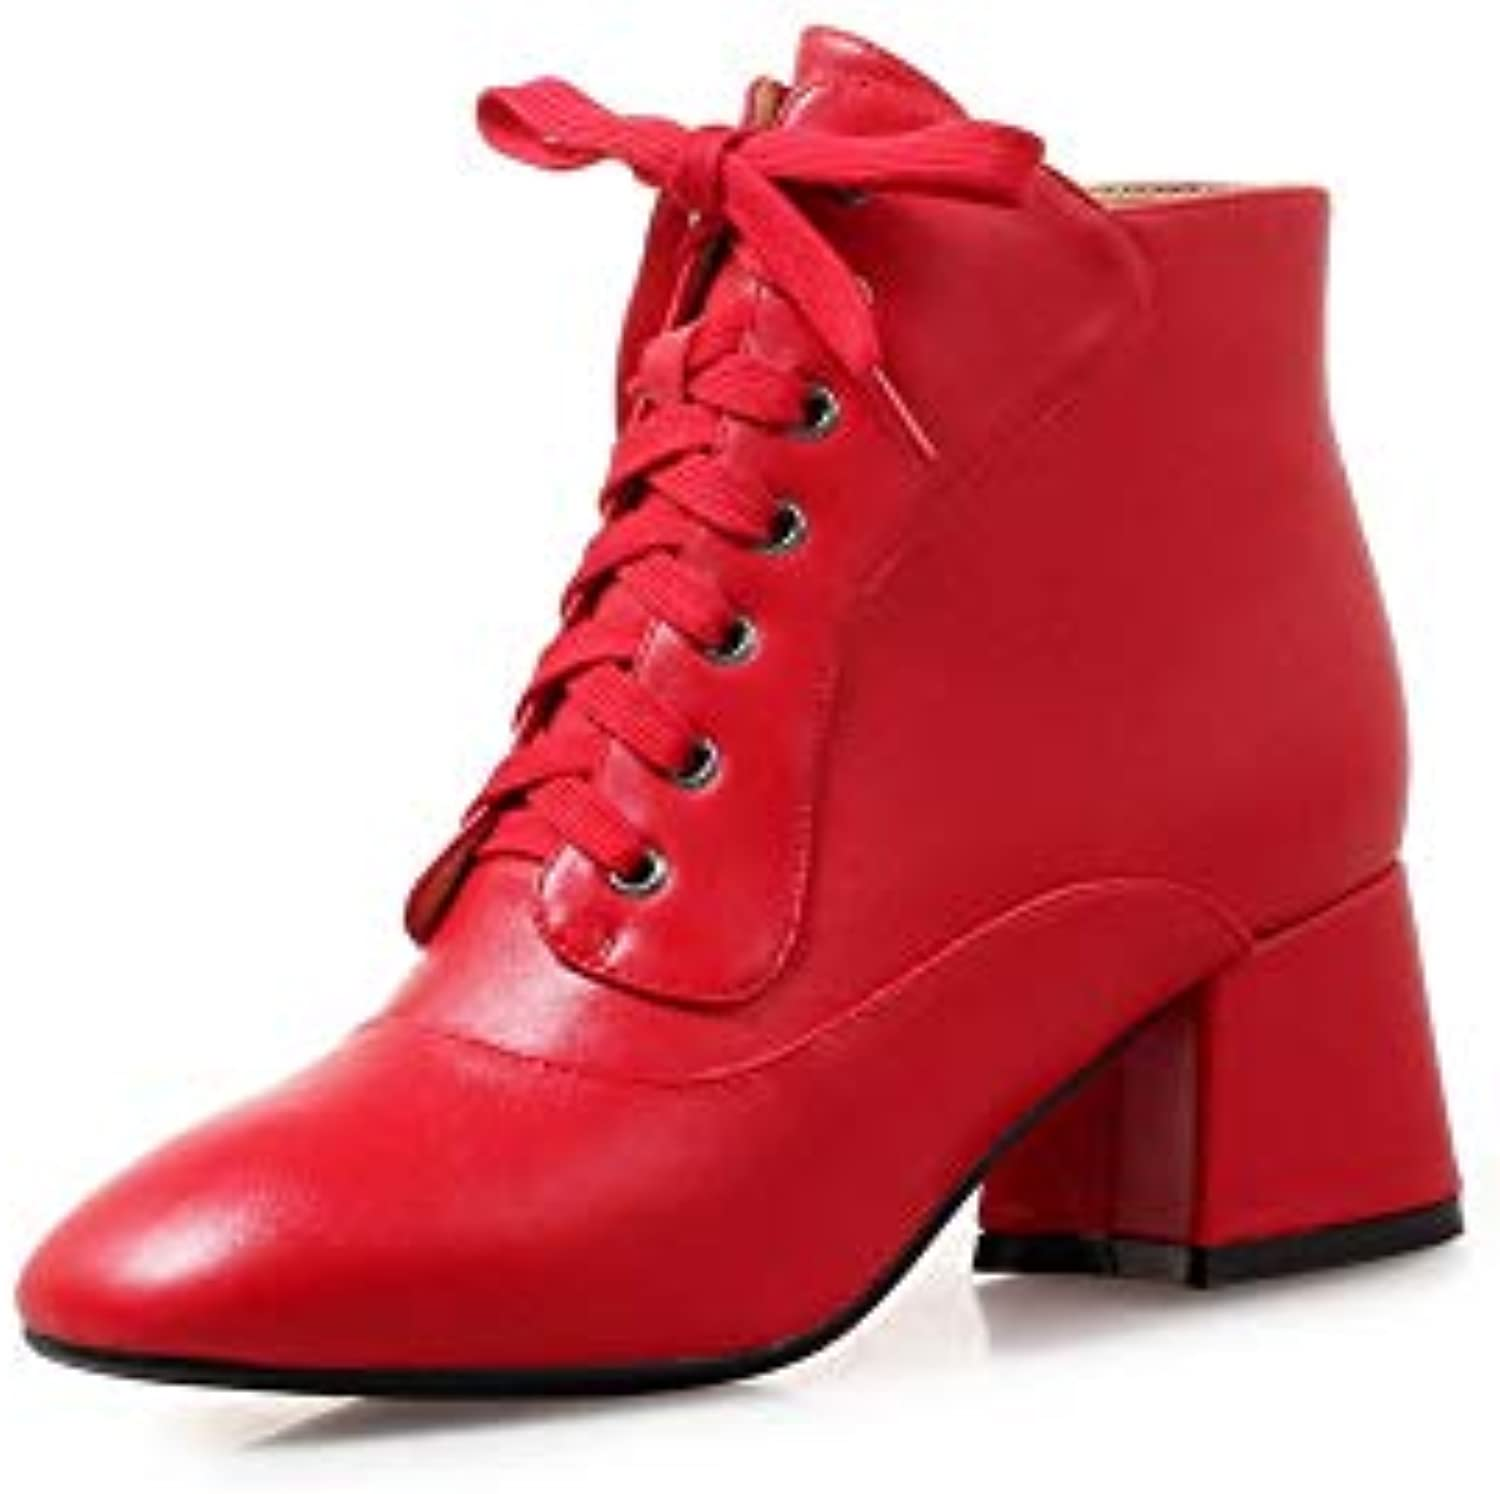 AN DKU02723, Sandali con Zeppa Donna, Rosso (rosso), 35 35 35   Shopping Online  fb7525